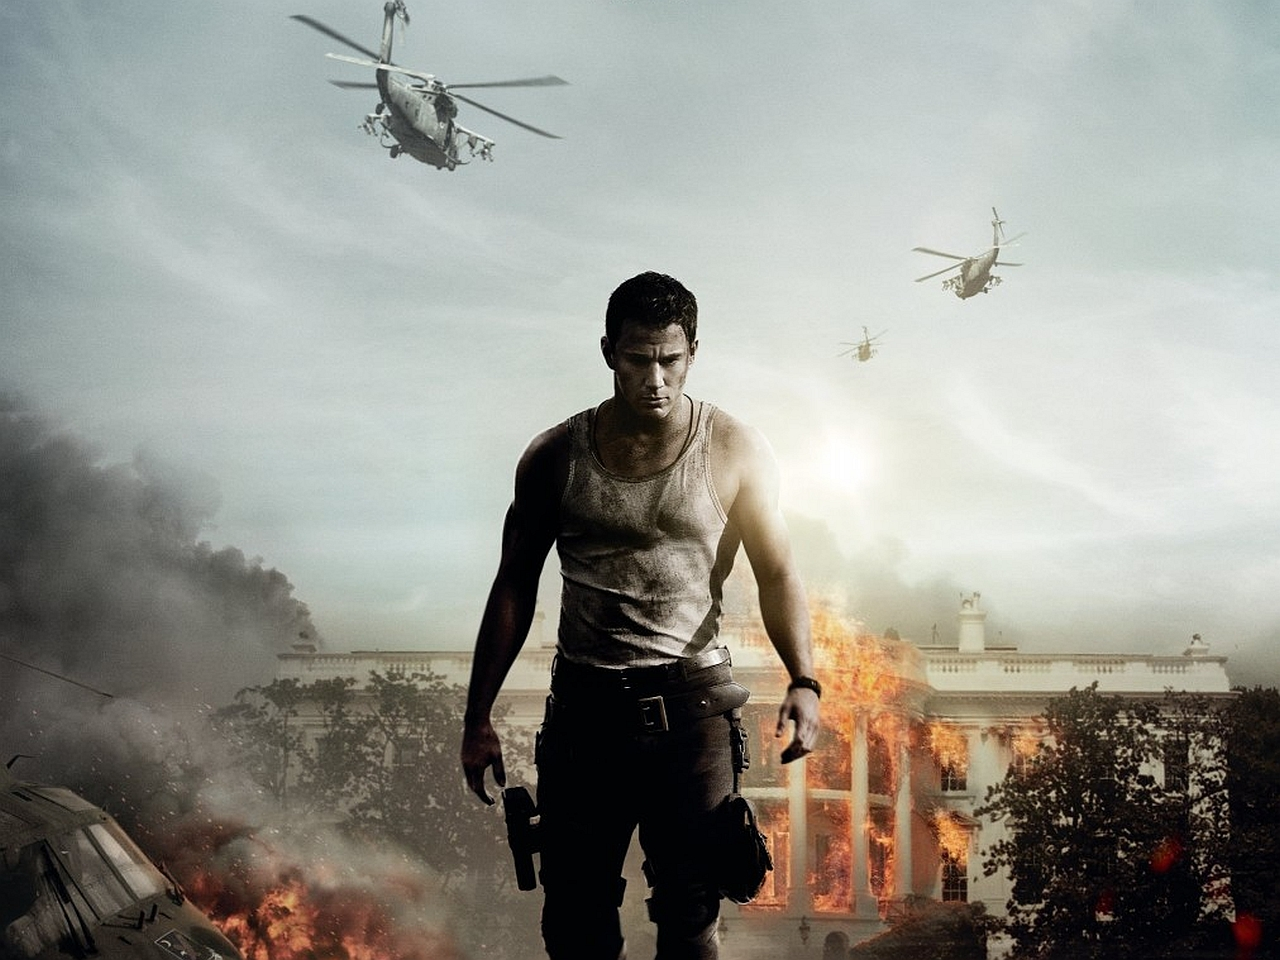 White House Down 2013 - White House Down 2013